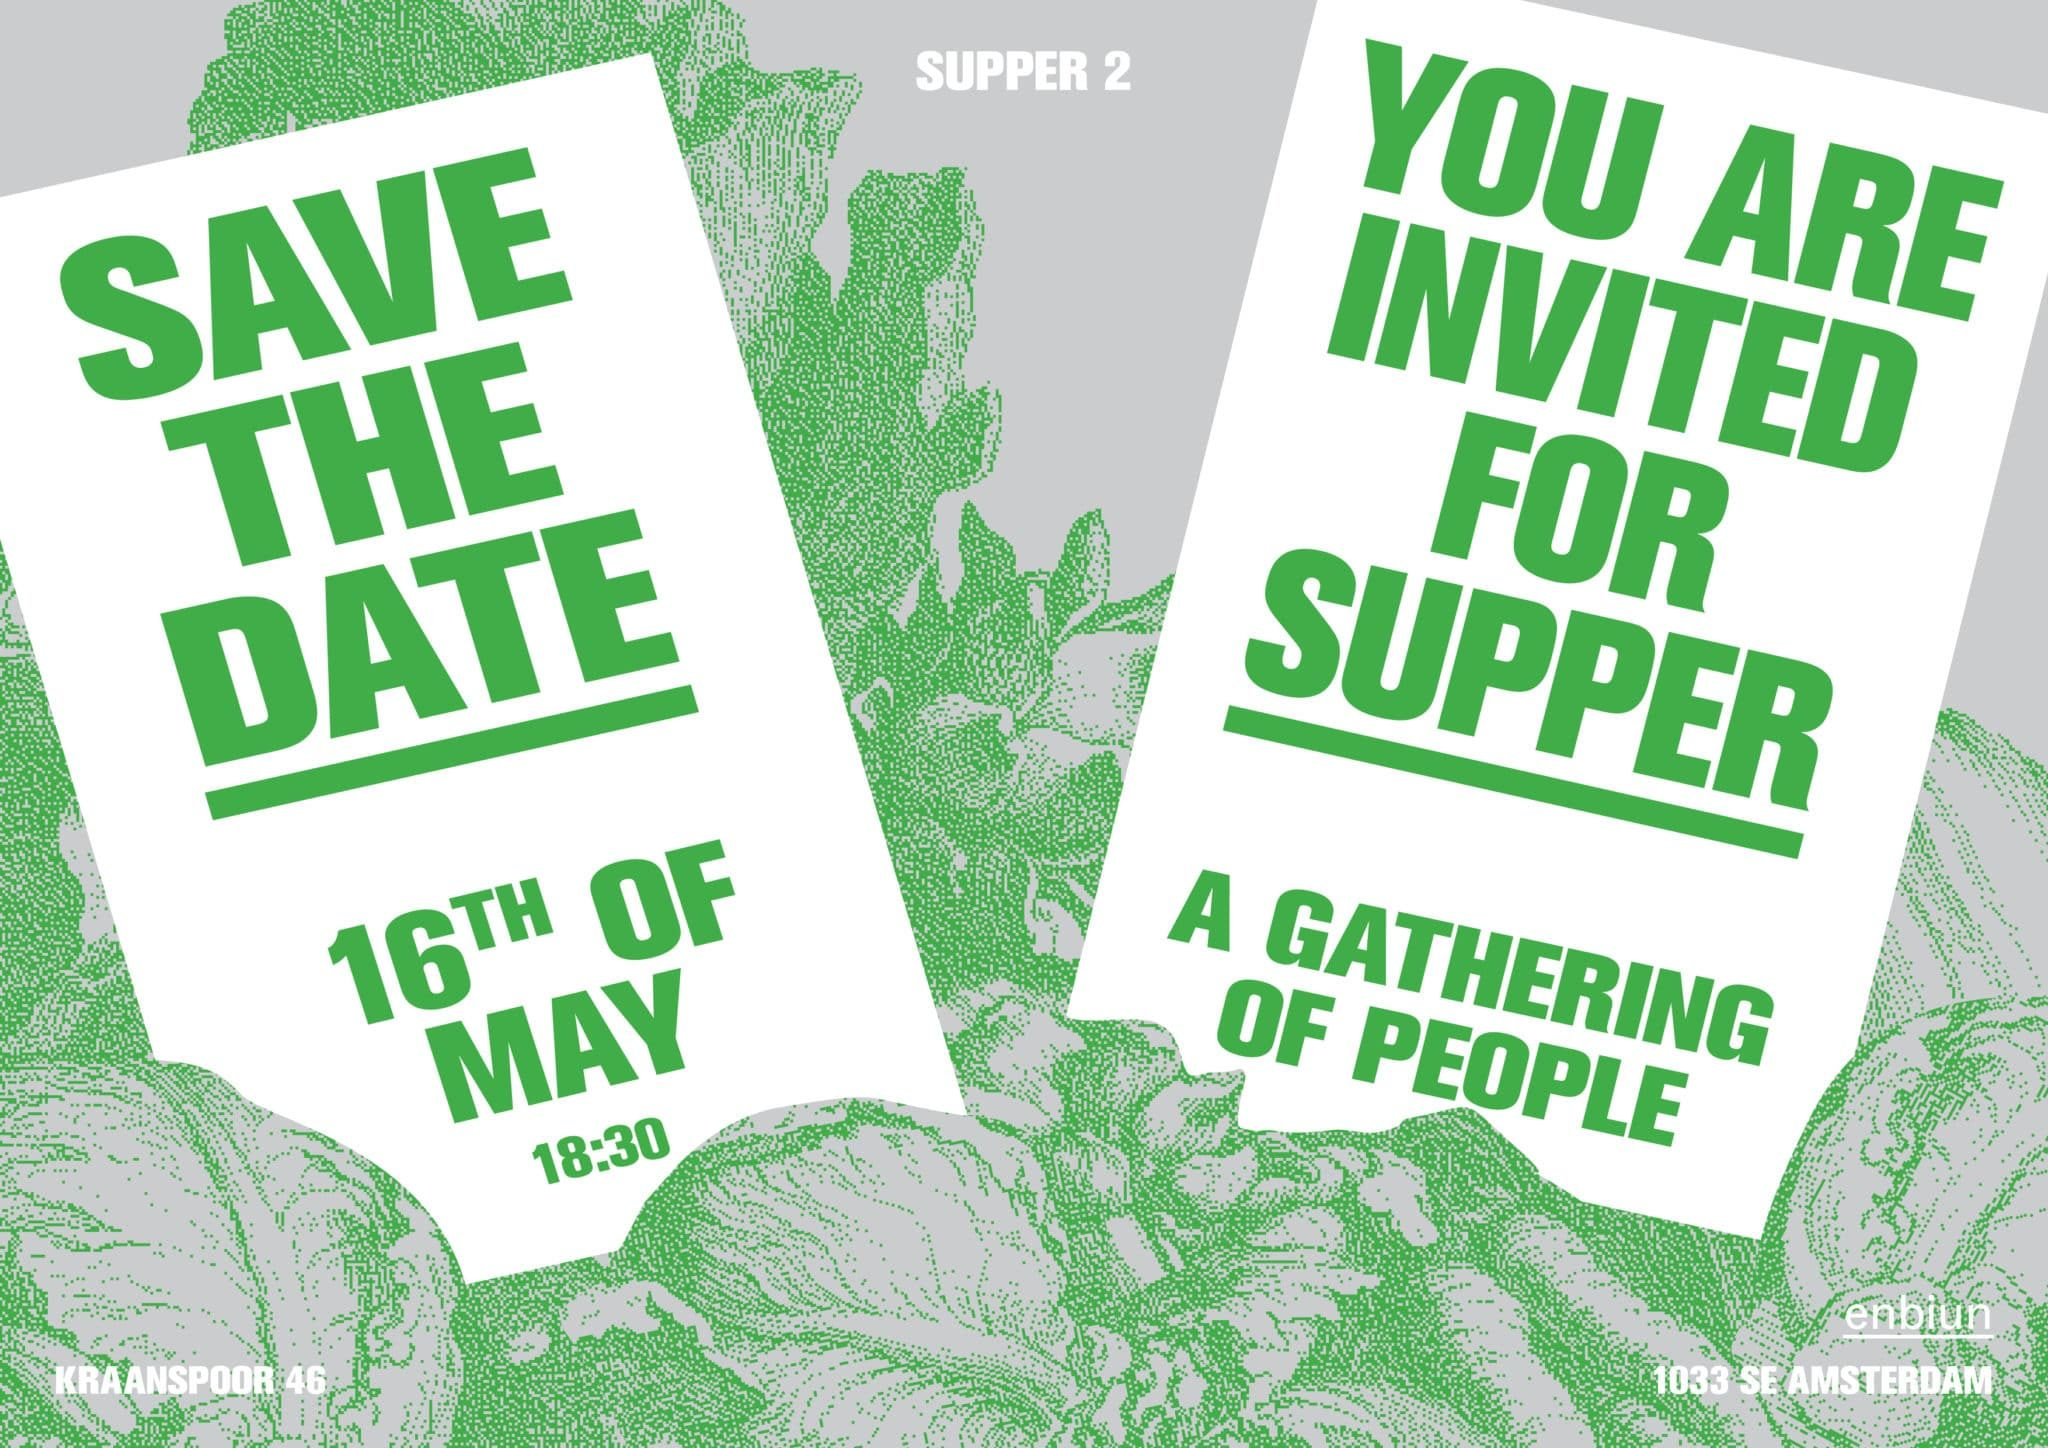 enbiun supper invitation graphic